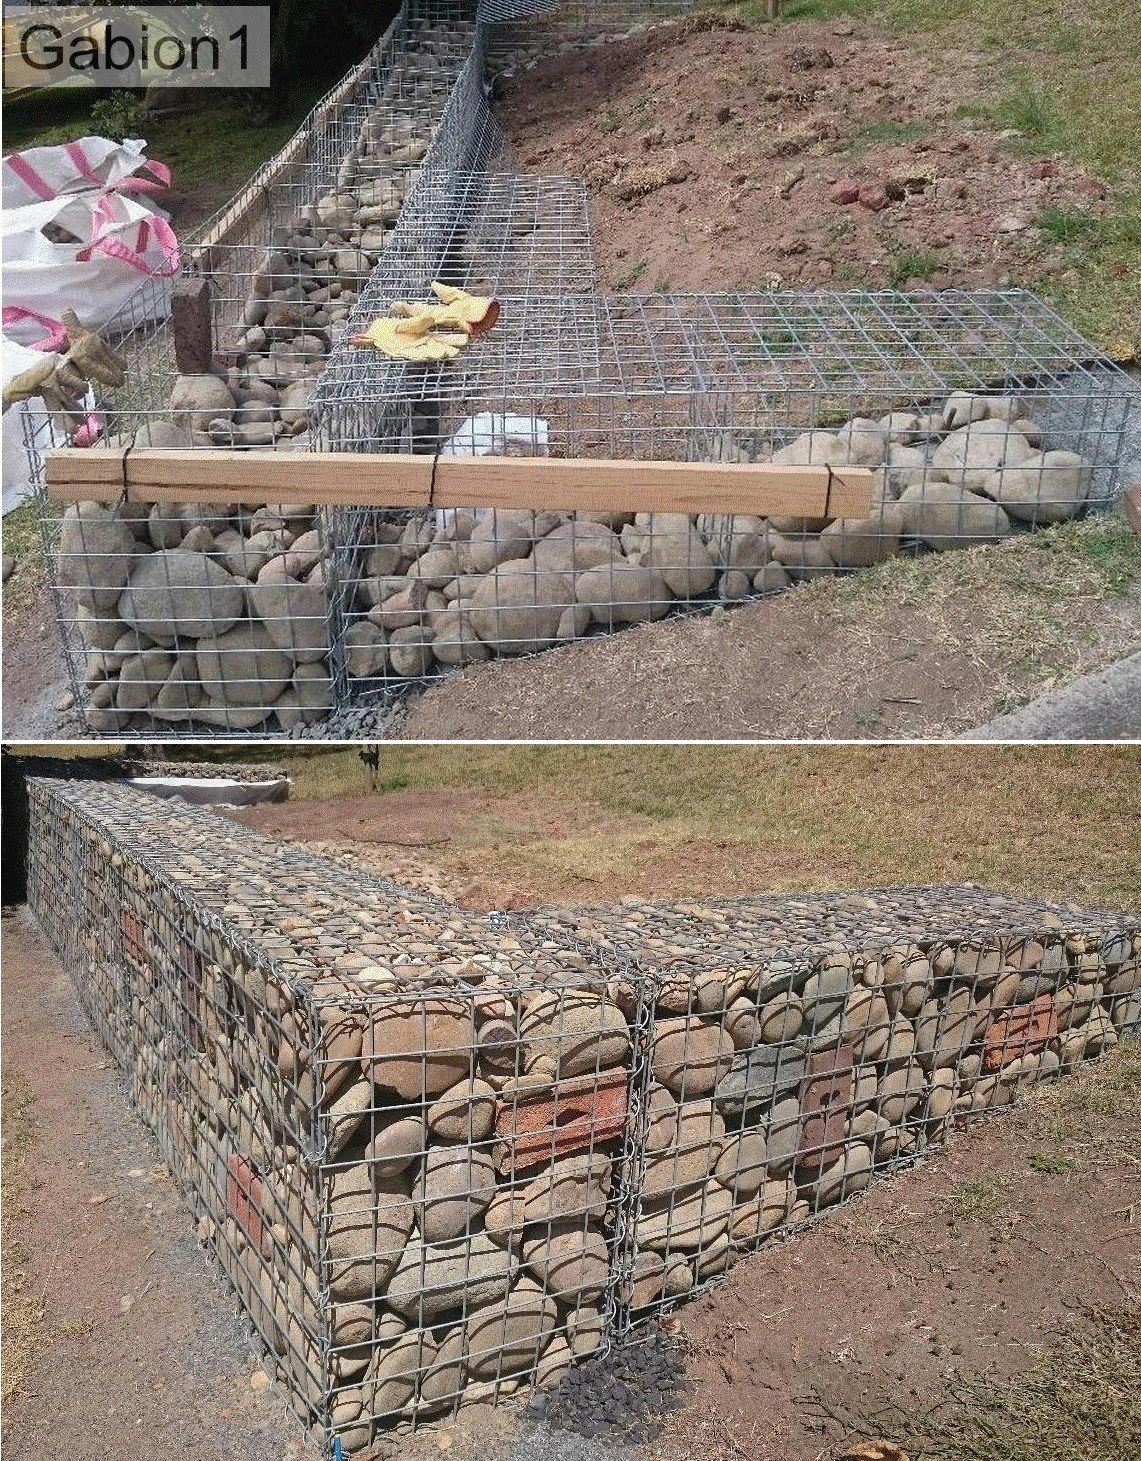 gaviones decorativos mil anuncios com para piedras 134526673 3 gabion built with temporary timber supports http:--www.gabion1.com.